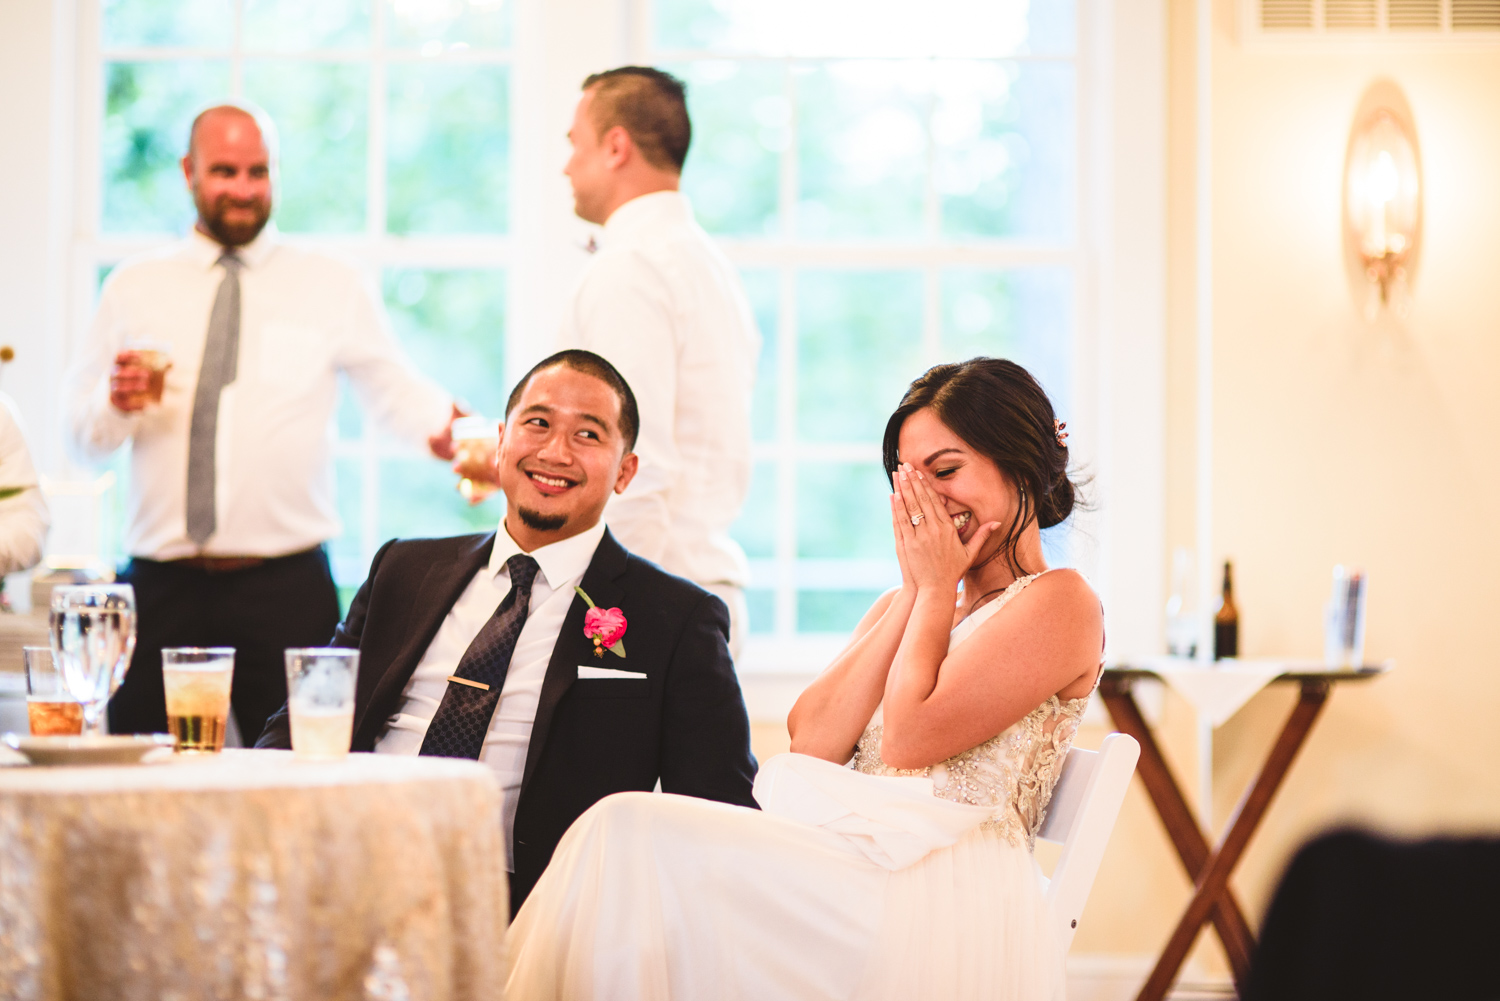 044 bride covers her face during toasts.jpg